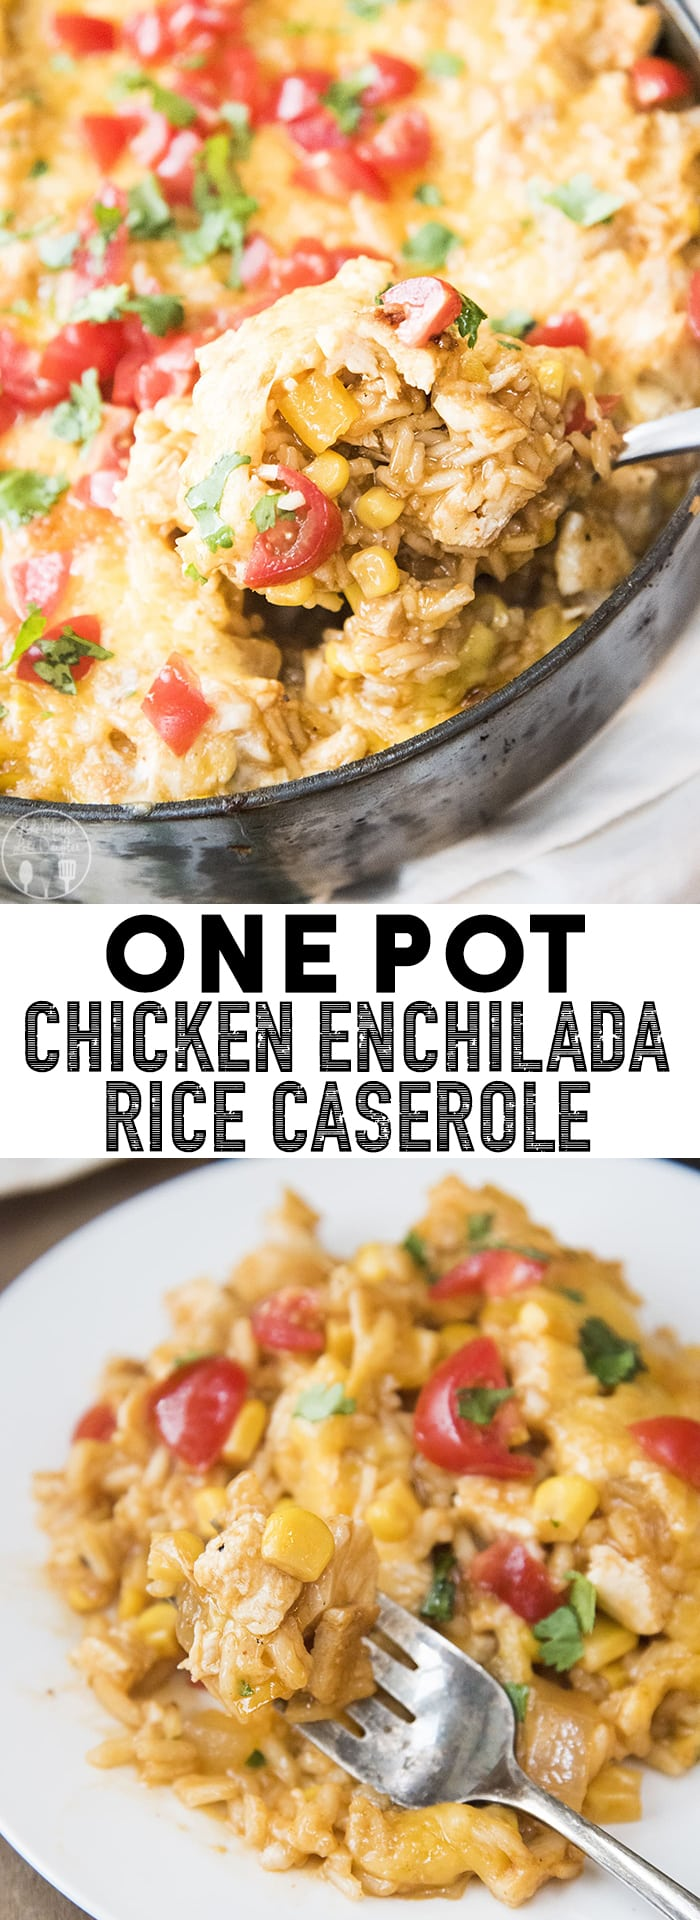 One Pot Chicken Enchilada Rice Casserole is a perfect weeknight dinner idea, its packed full of flavor with shredded chicken, enchilada sauce and cheesy goodness, made in only 45 minutes!